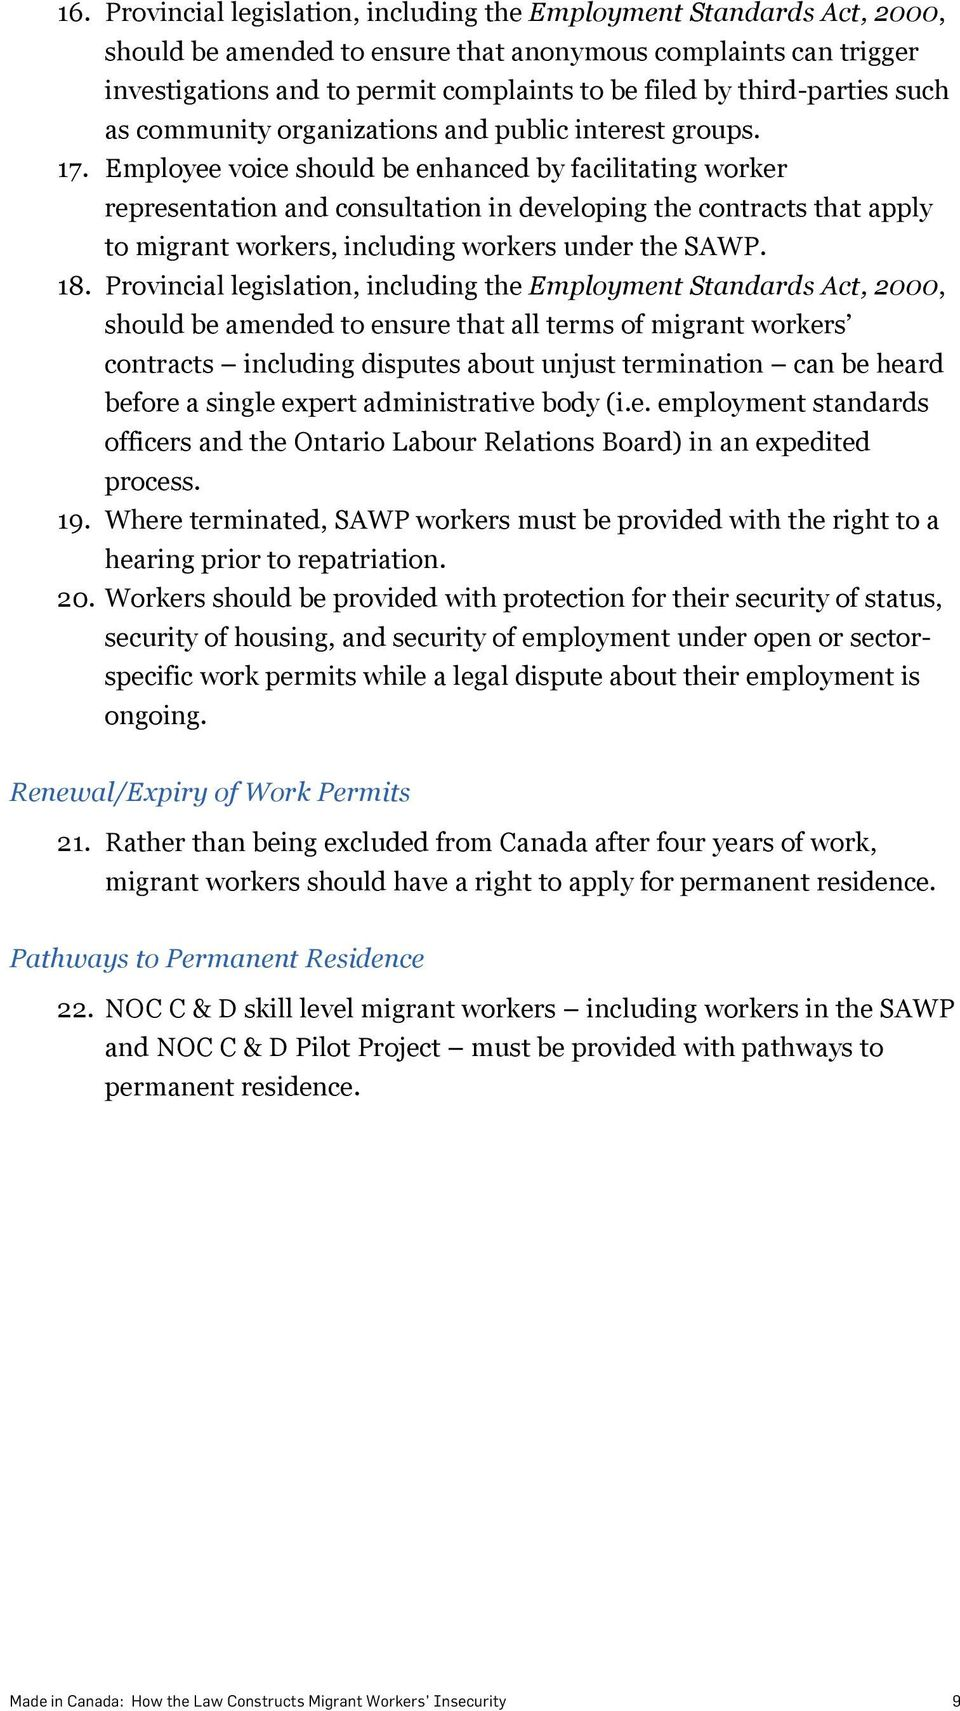 Employee voice should be enhanced by facilitating worker representation and consultation in developing the contracts that apply to migrant workers, including workers under the SAWP. 18.